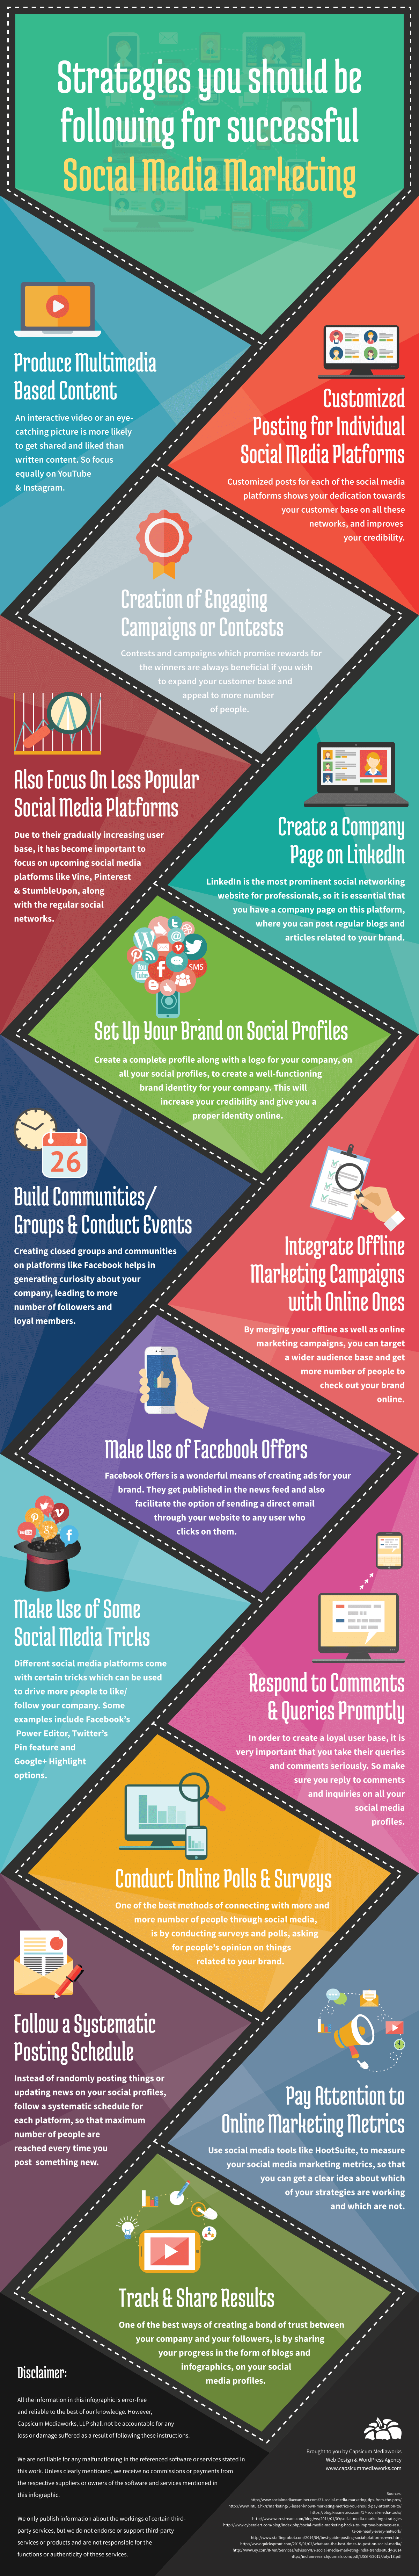 social media strategies infographic